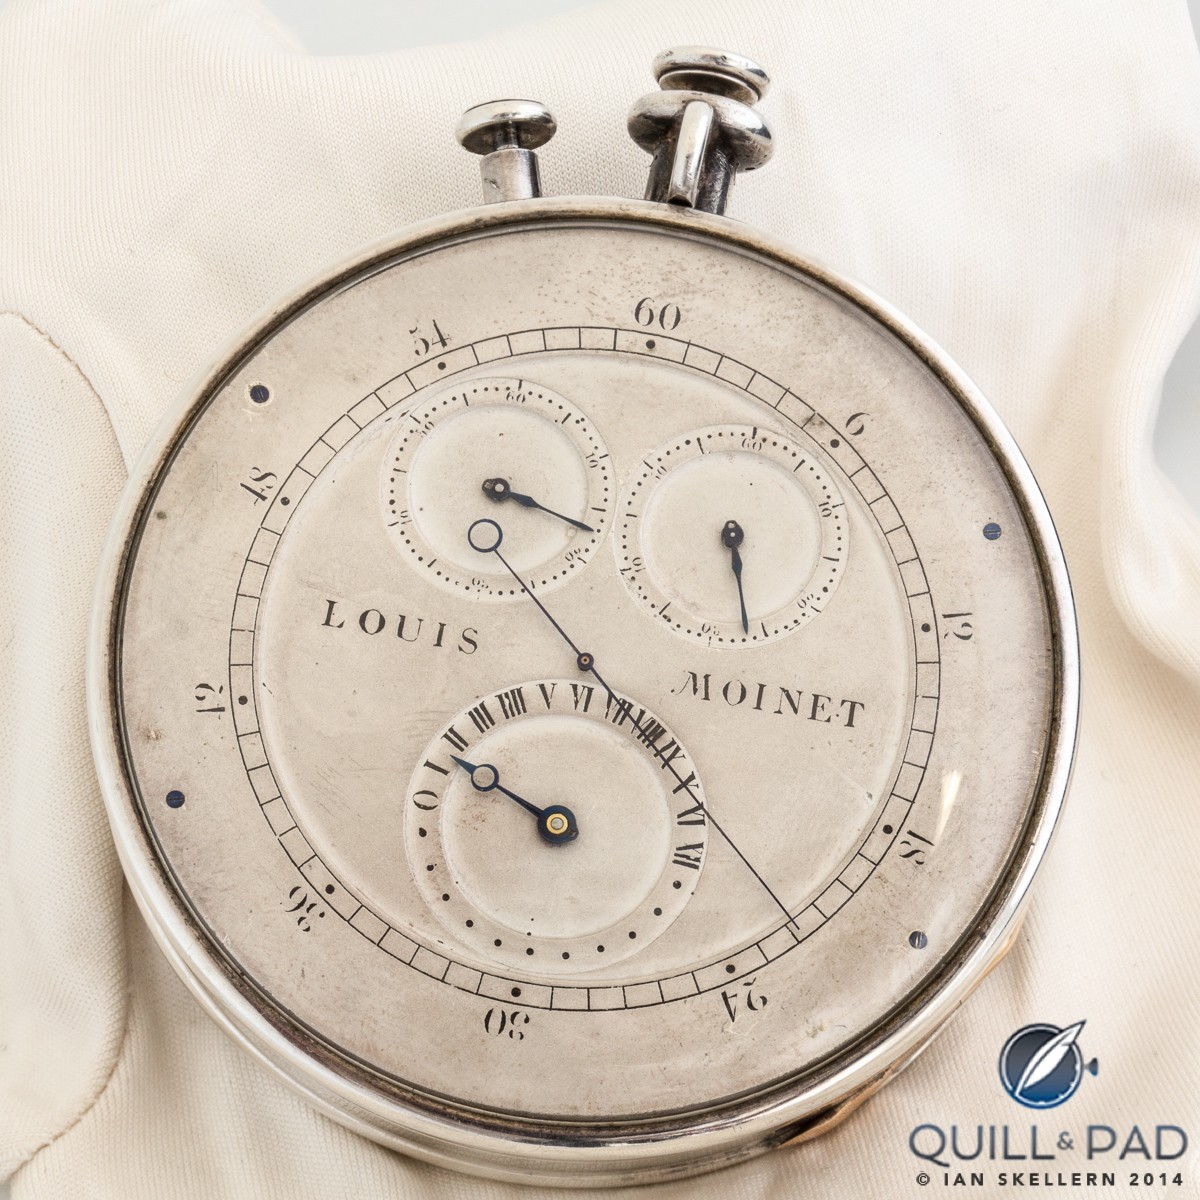 The Louis Moinet Compteur de Tierces has four displays: a long central hand rotating once per second, and three sub dials indicating elapsed seconds, minutes, and hours